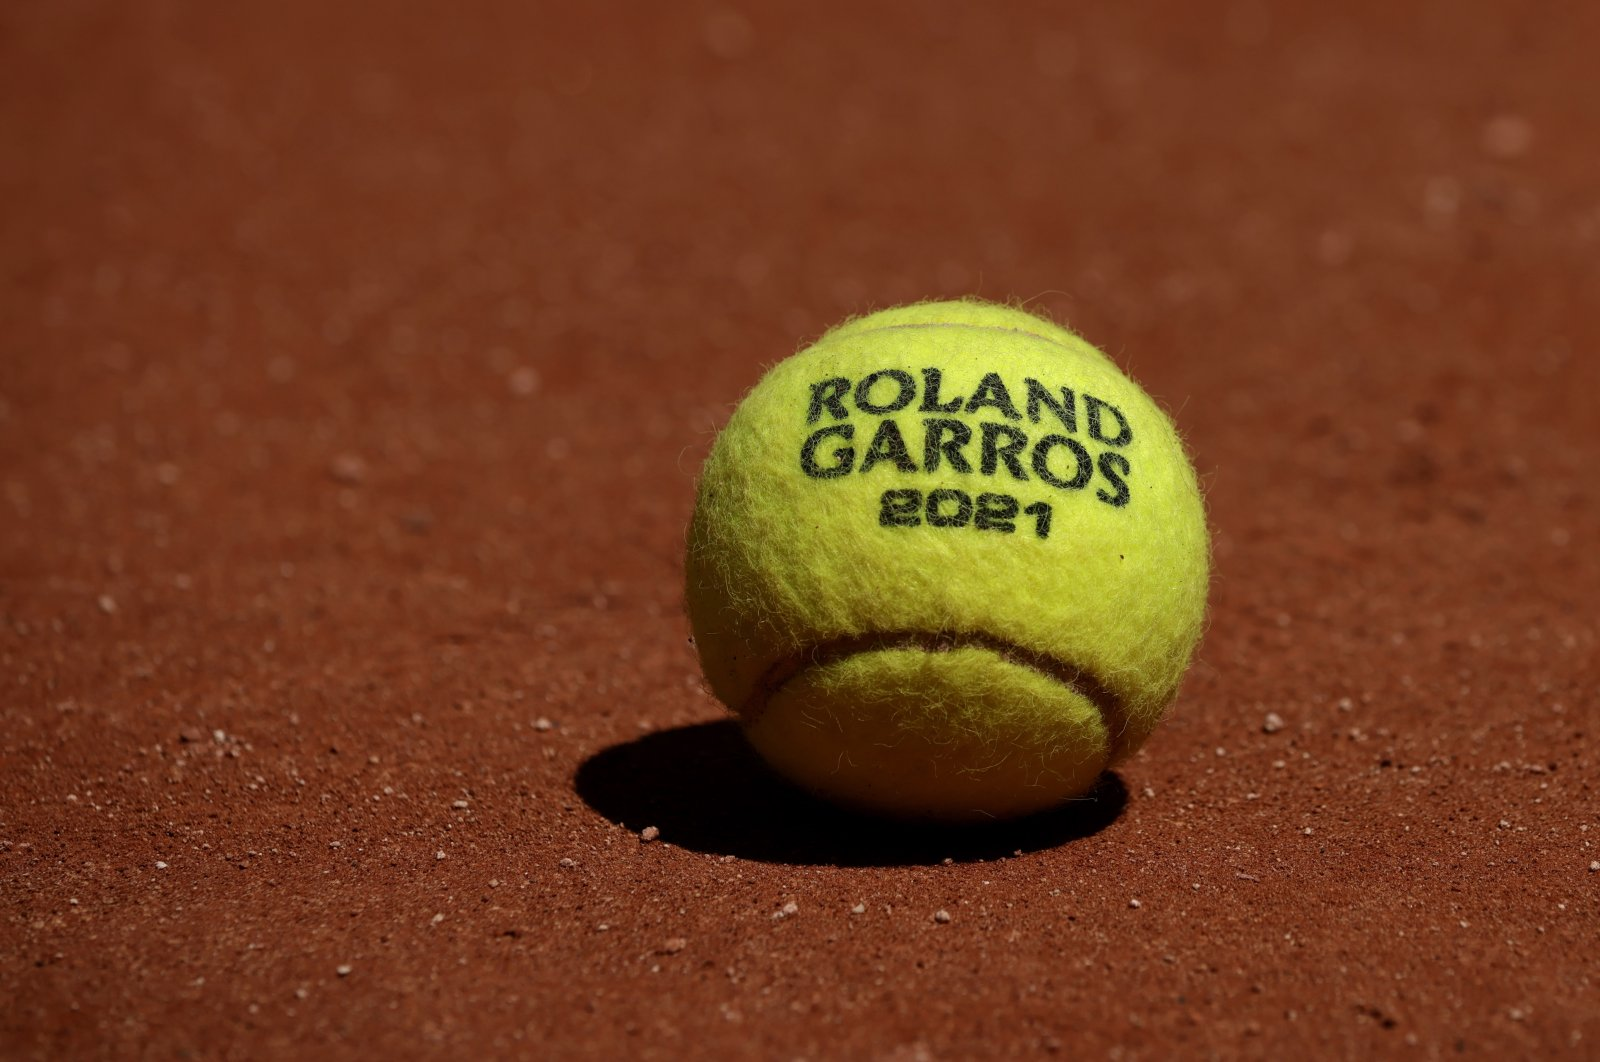 The official 2021 Roland Garros tennis ball during a practice session ahead of the French Open tennis tournament at Roland Garros in Paris, France, May 27, 2021. (EPA Photo)